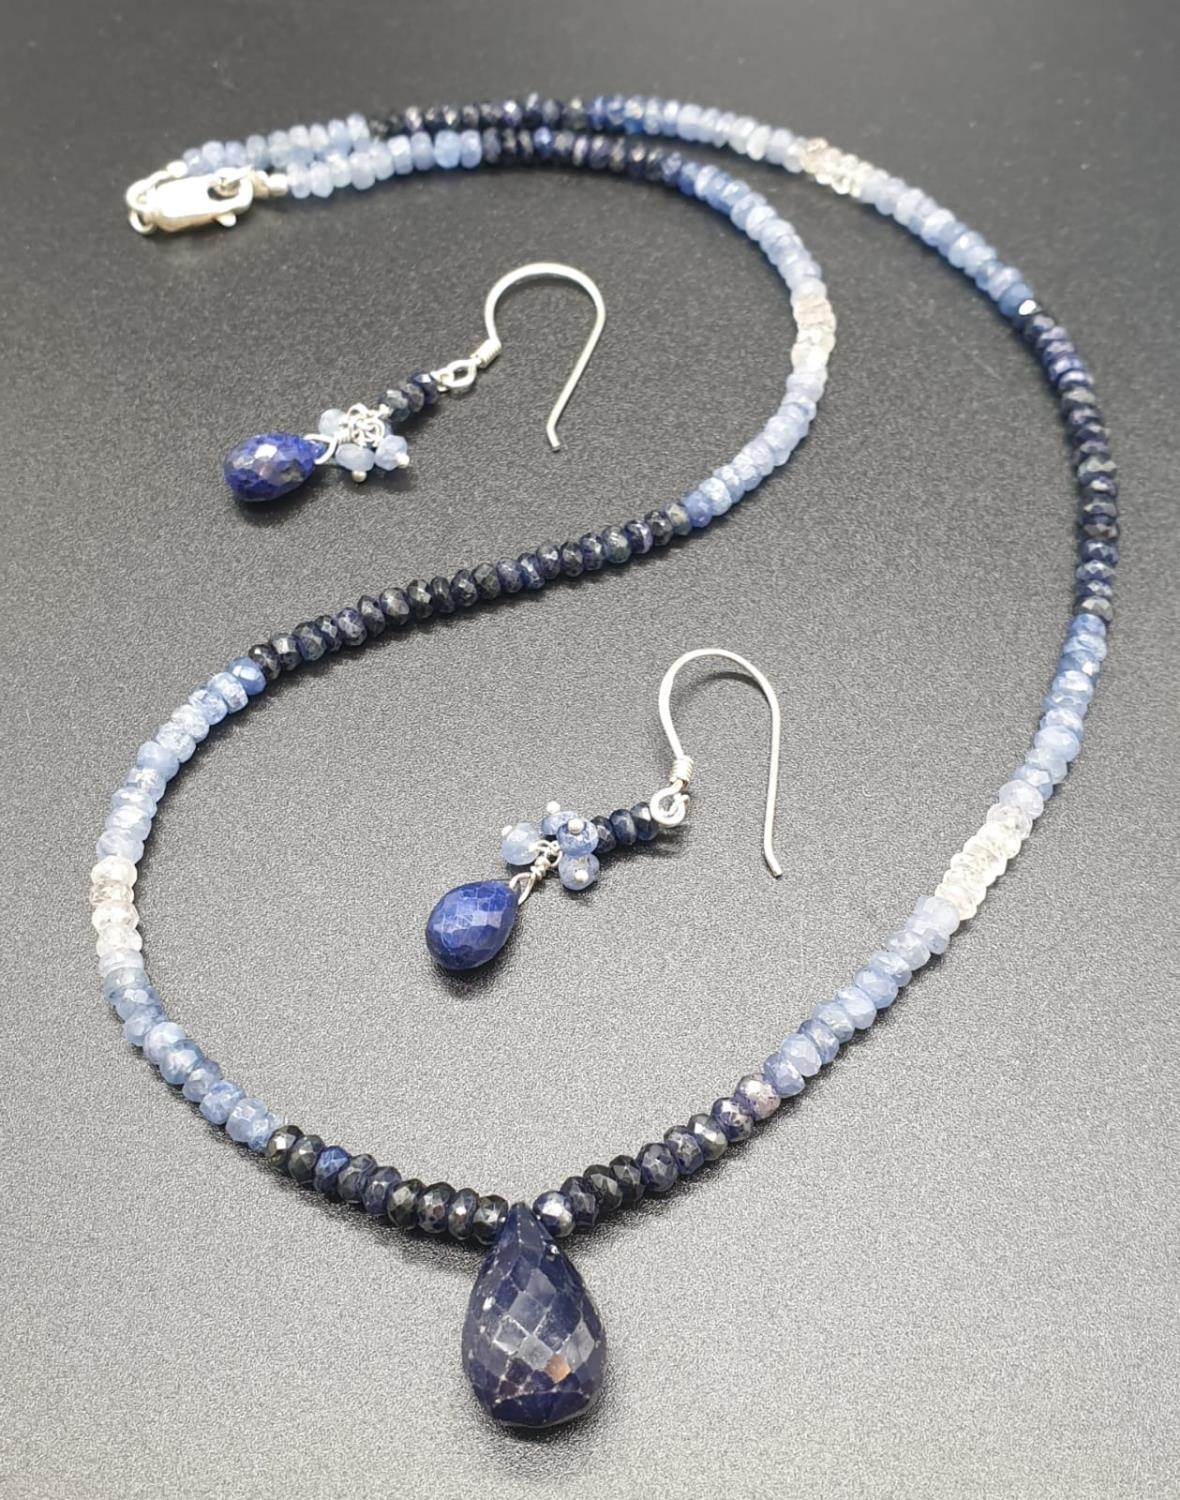 A shaded Blue sapphire Necklace with a sapphire drop and matching dangler earrings. Necklace